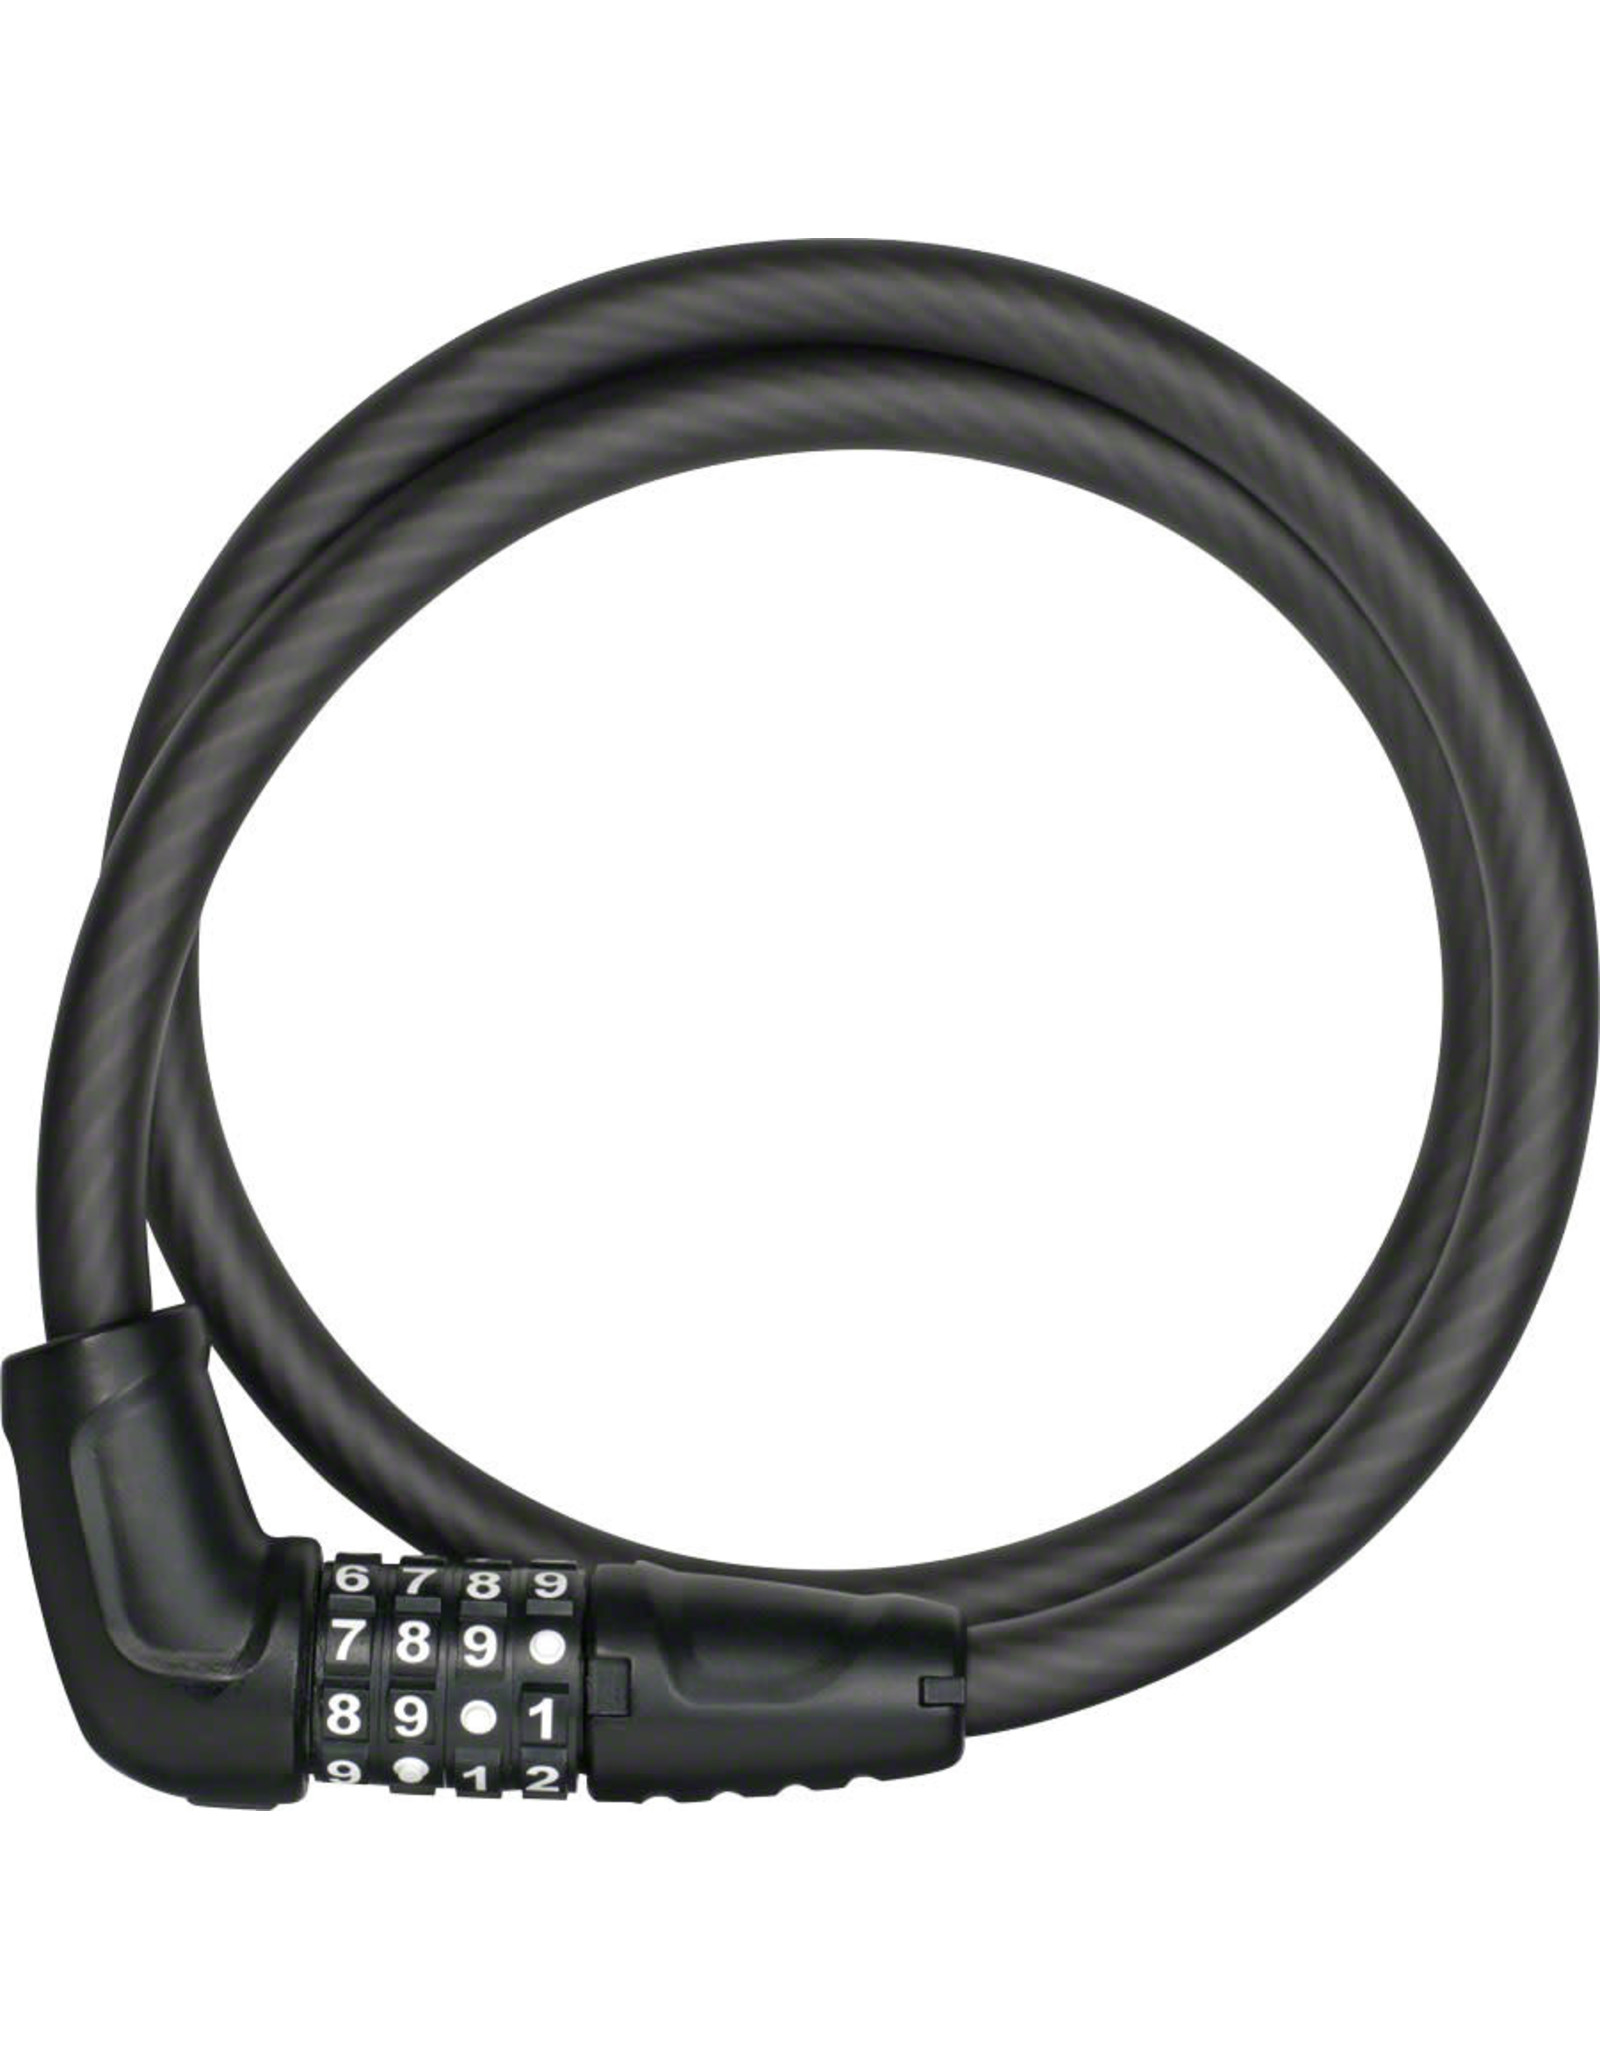 ABUS ABUS Combination Numerino 5412C Cable Lock: 85cm x 12mm, Black